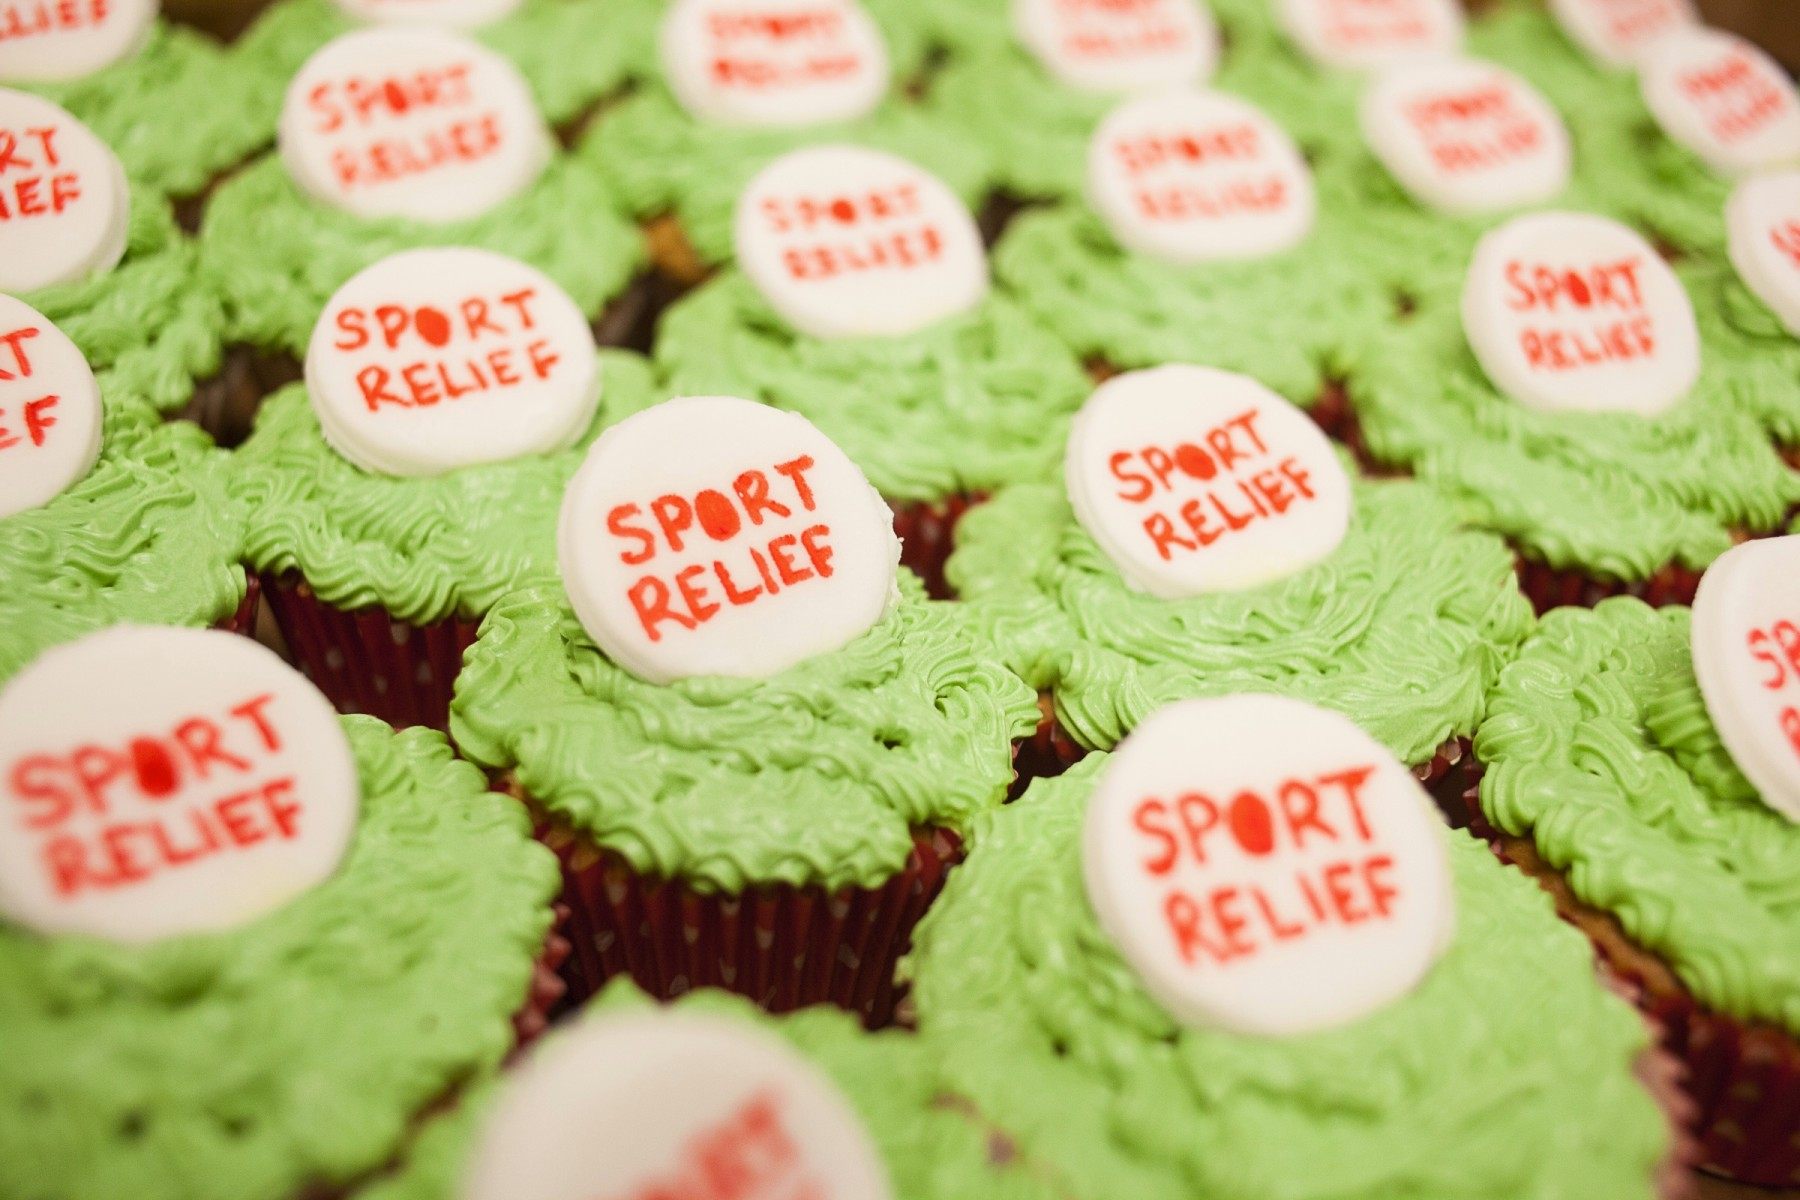 SportsReliefCakeSale210314  1 of 8